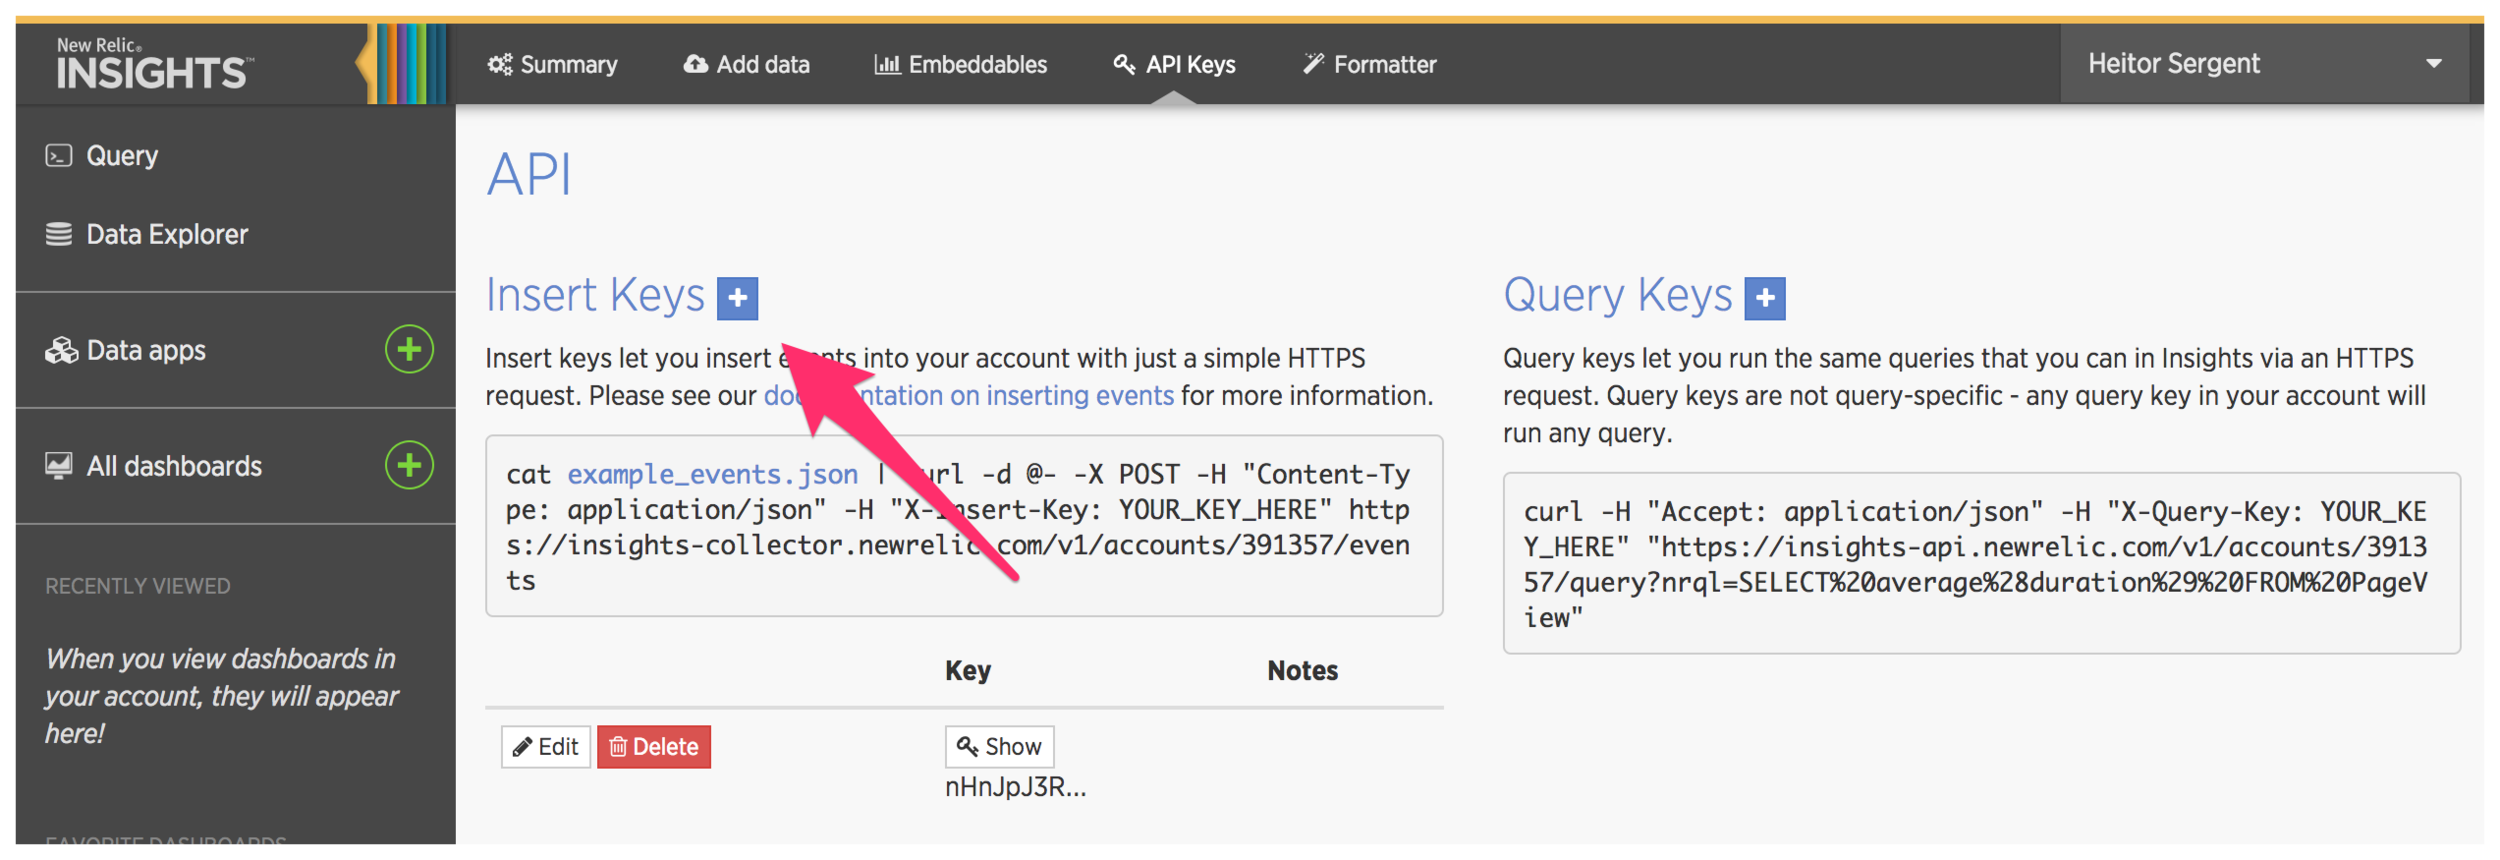 New Relic Insights with an arrow pointing to the + button next to Insert Keys